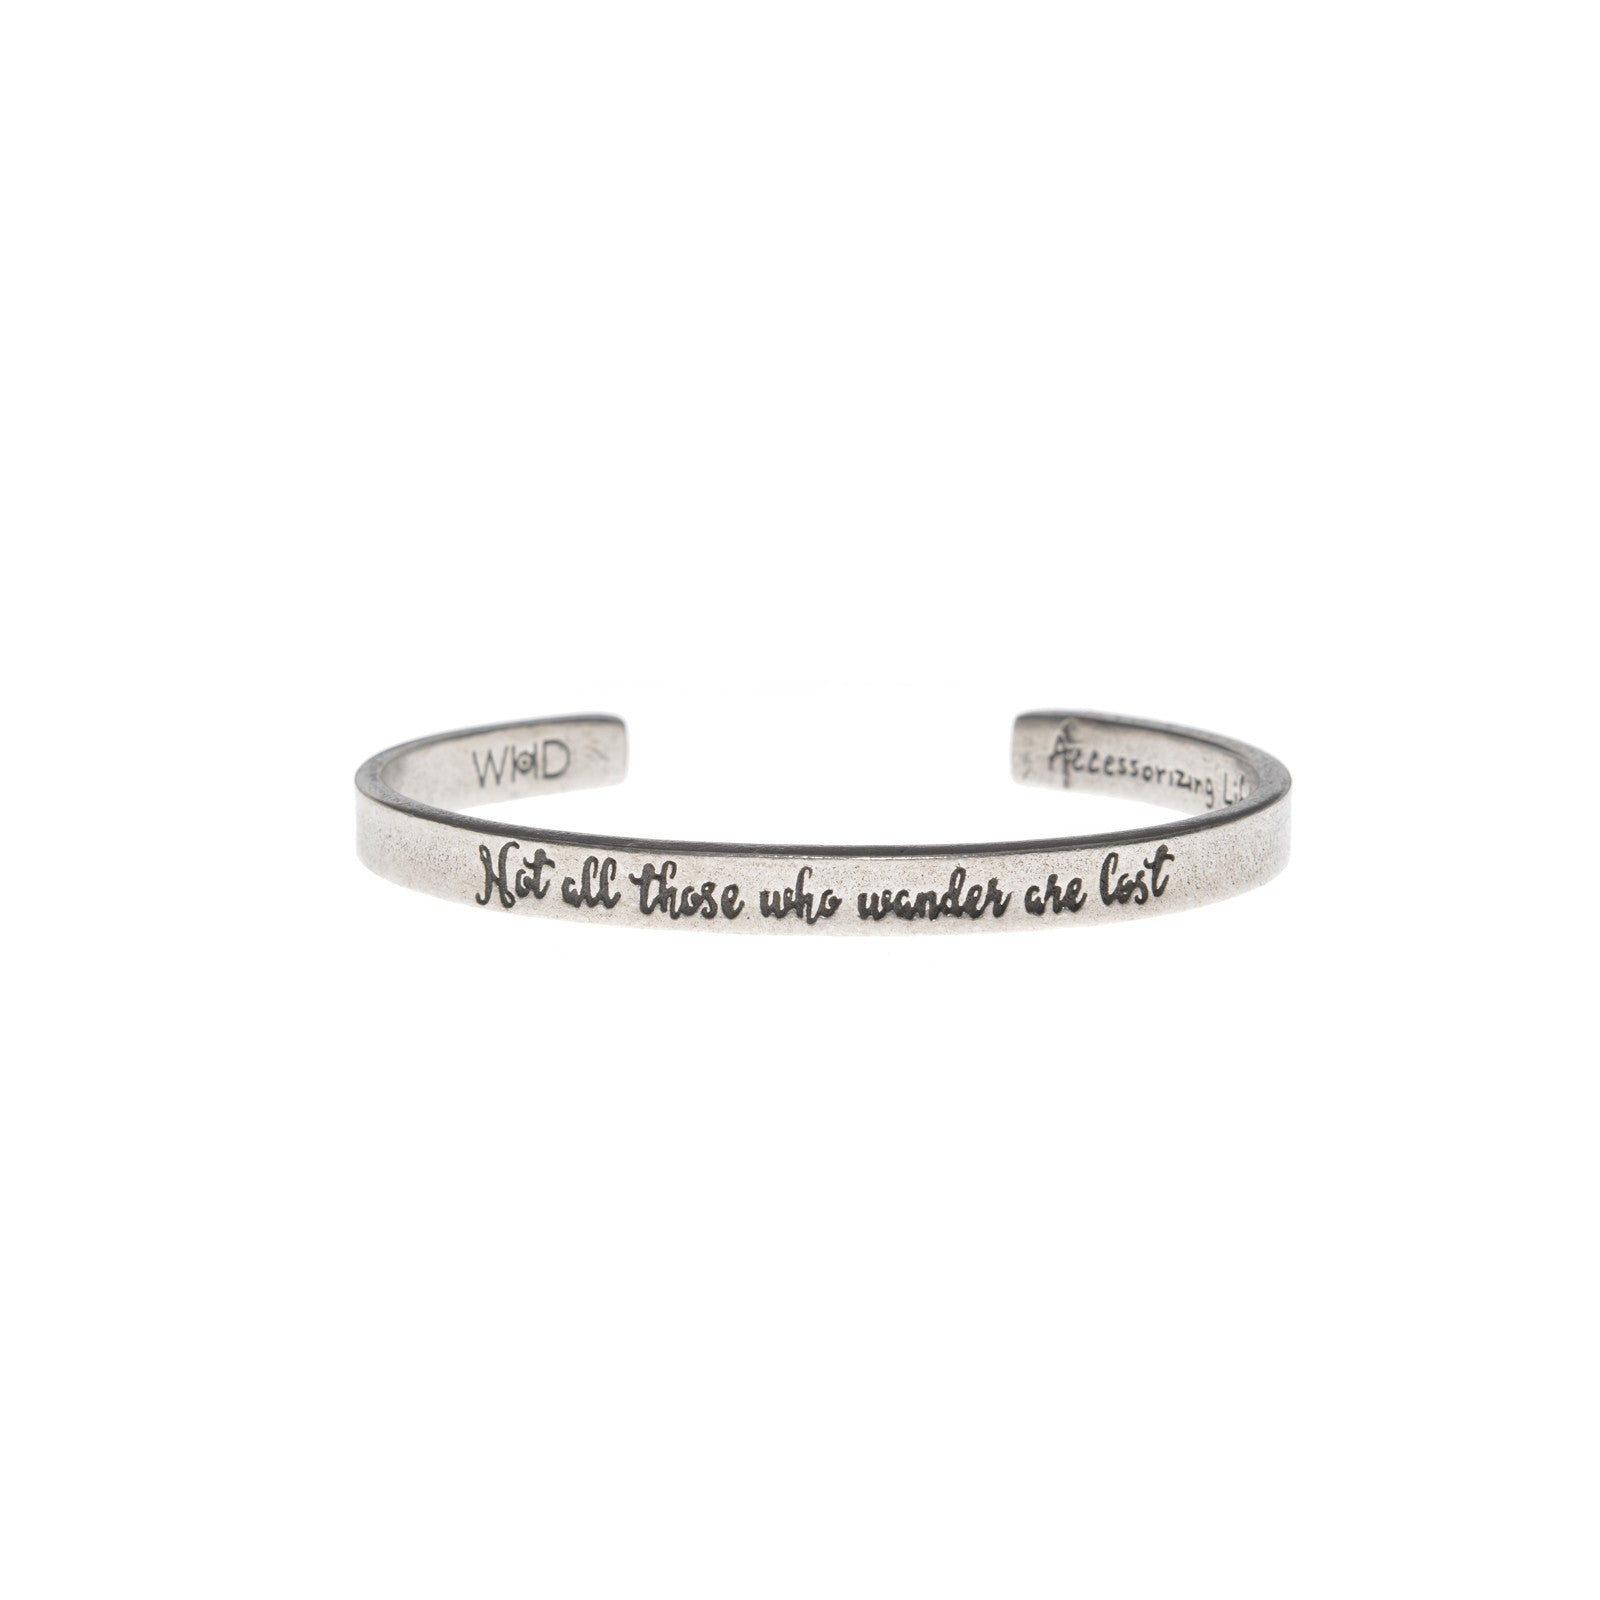 Not all those who wander are lost Quotable Cuff Bracelet